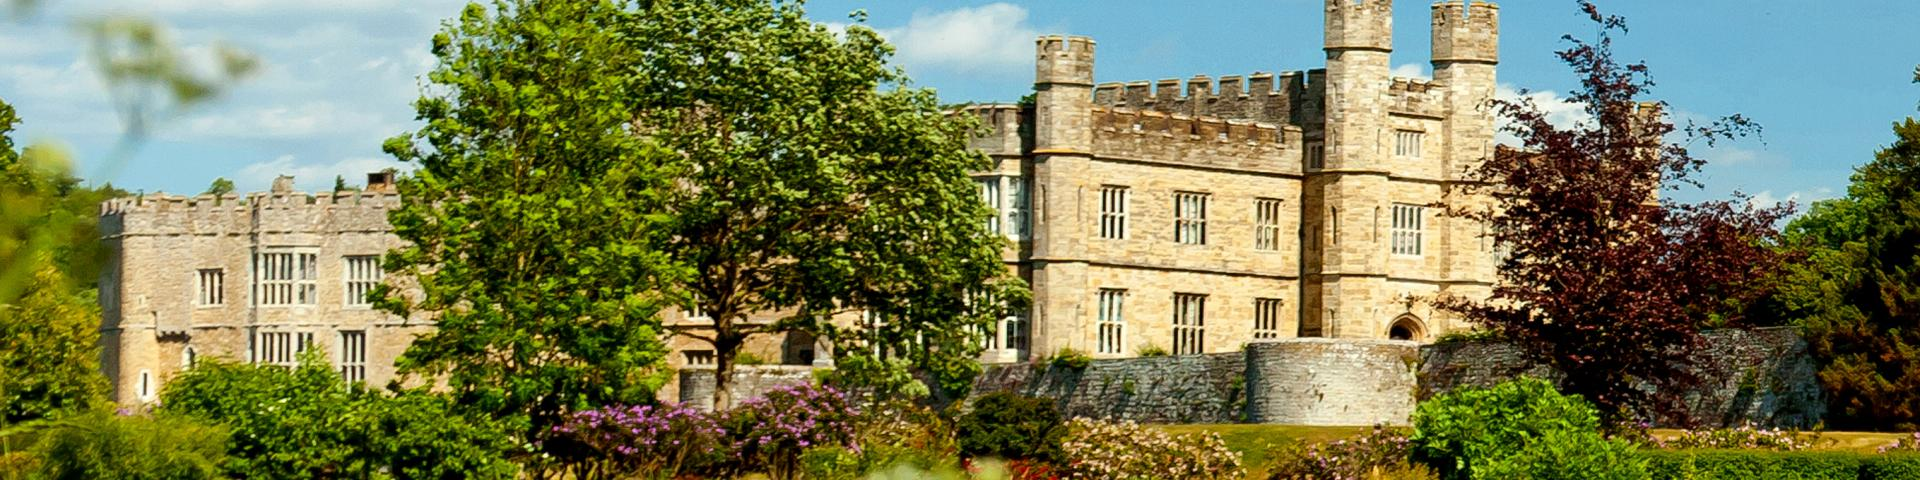 The George Inn Leeds Maidstone Kent Leeds Castle